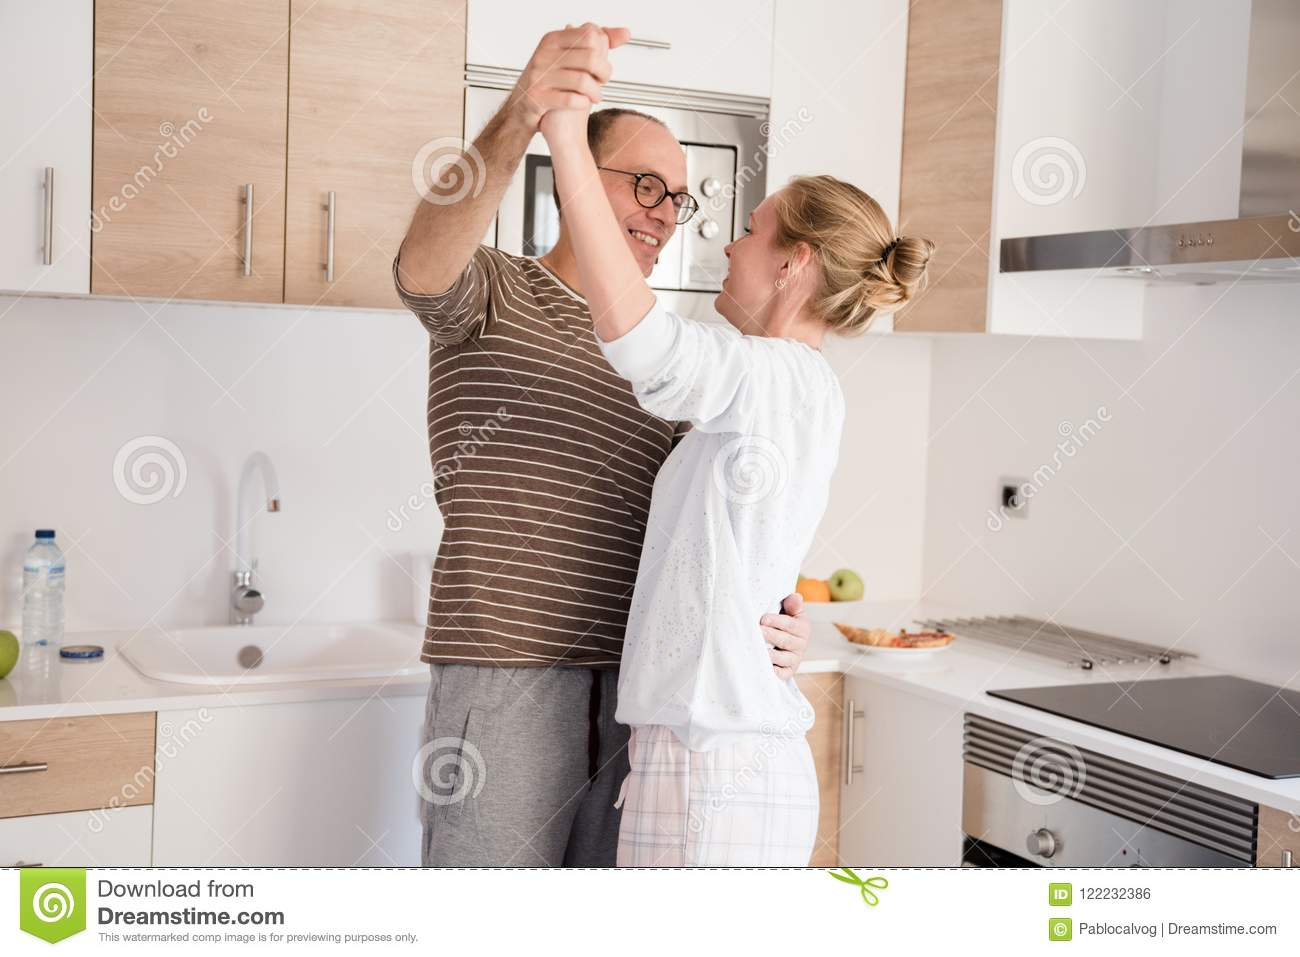 Couple holding each other closely as they stand in the kitchen and dance they have their arms up